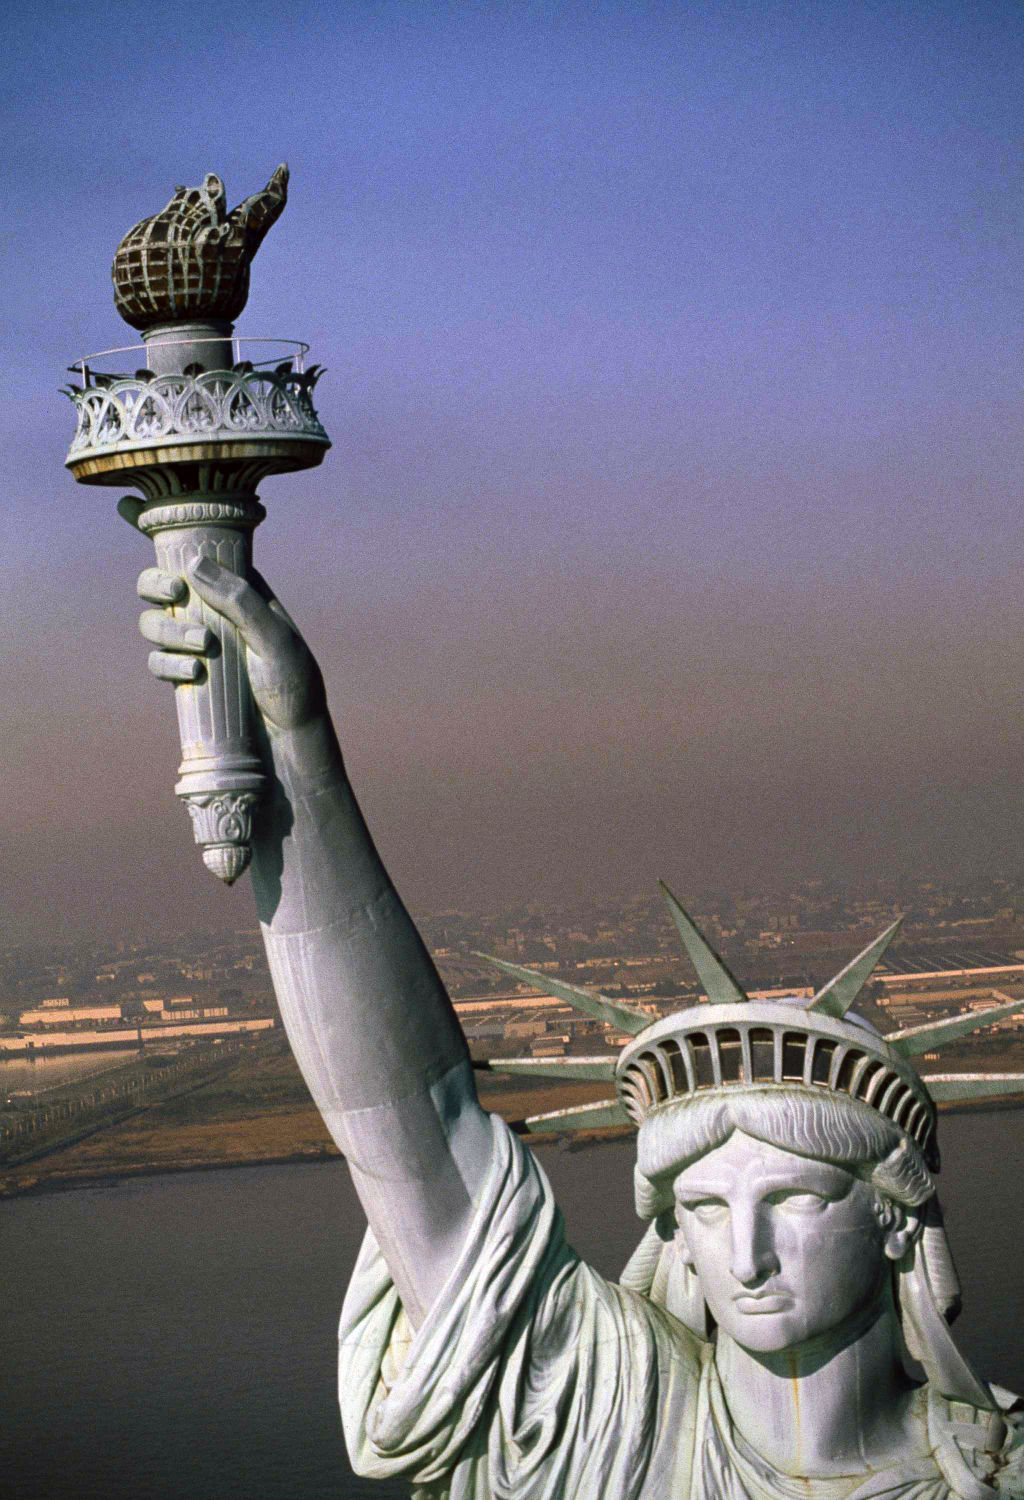 Satatue Of Liberty With Puartarican Flag Tattoo: Photos: Anniversary Of Statue Of Liberty's Arrival